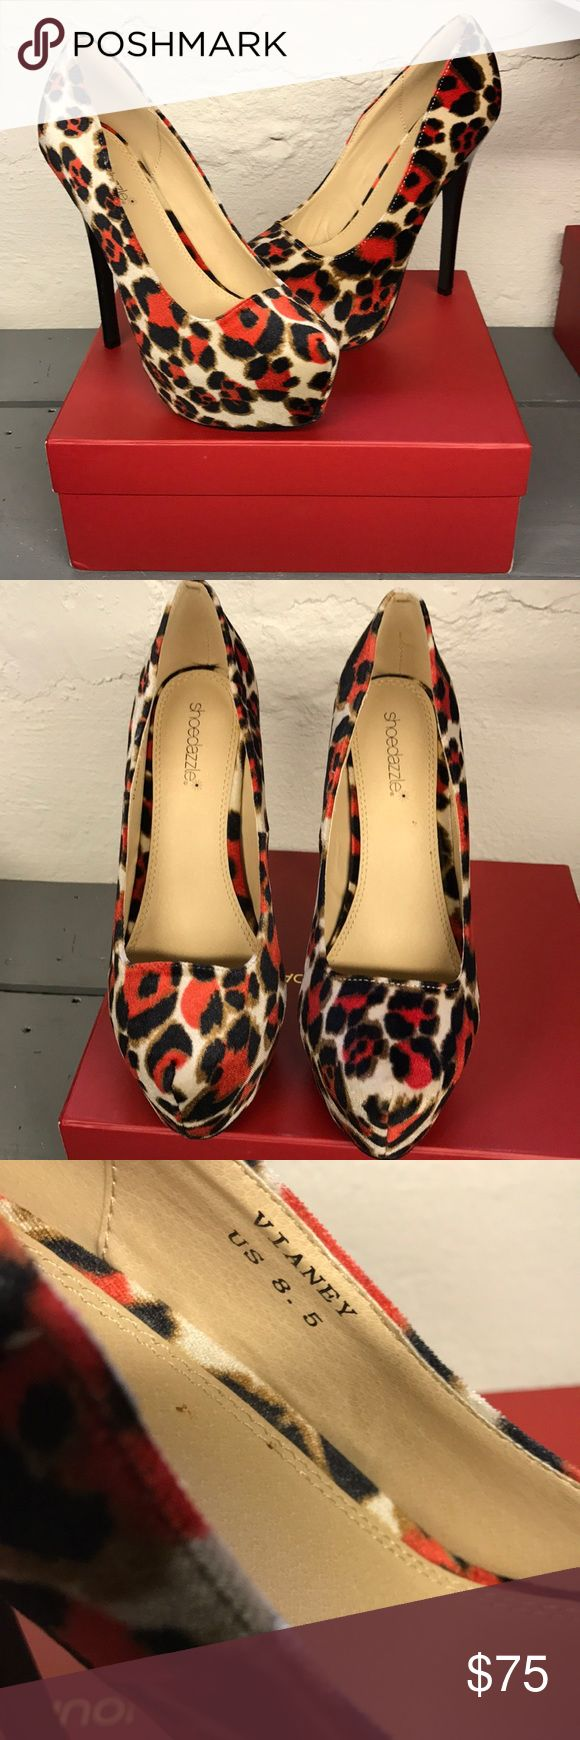 🆕Shoe dazzle red black leopard stiletto pumps The absolute perfect he'll for all of your holiday parties! Would look incredible with a red dress. Brand new never used stunning heels 2 inch platform make for a very comfortable fit. Shoe Dazzle Shoes Heels